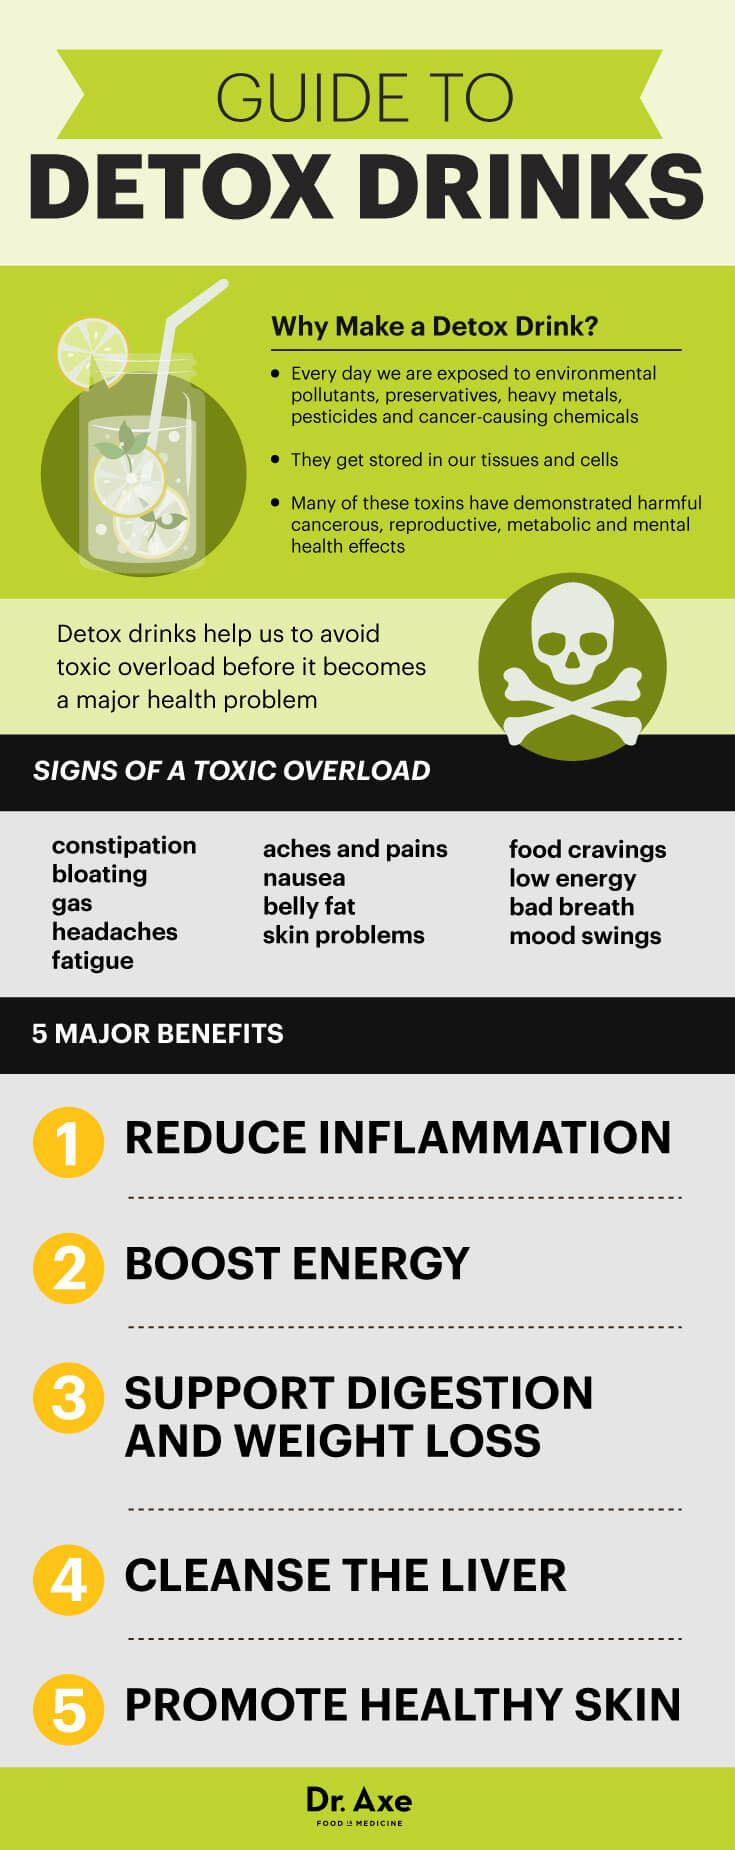 Detox drinks guide - Dr. Axe http://www.draxe.com #health #Holistic #natural